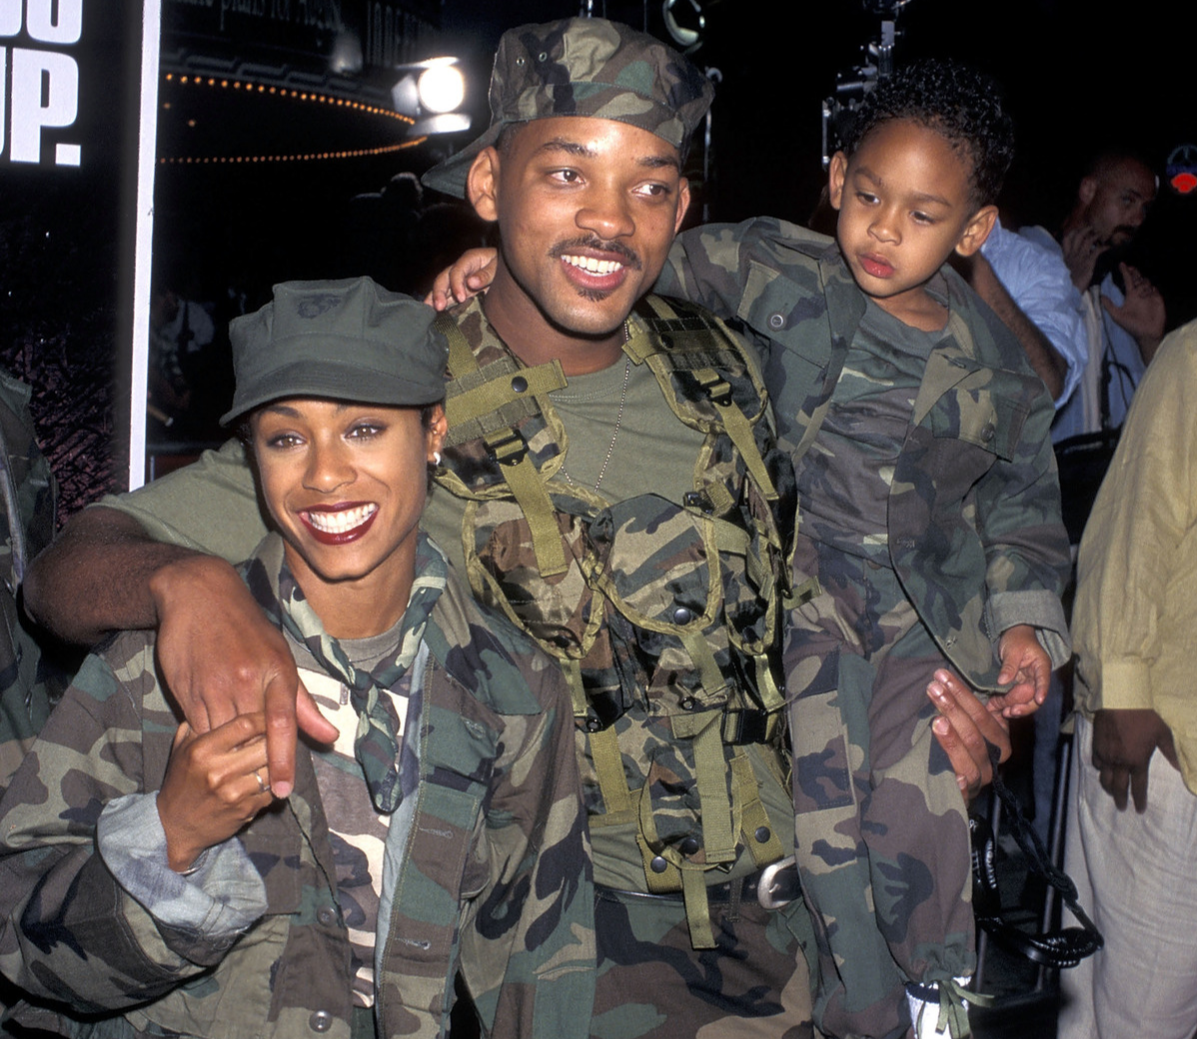 Will Smith with wife Jada at Independence day premiere in June 1996